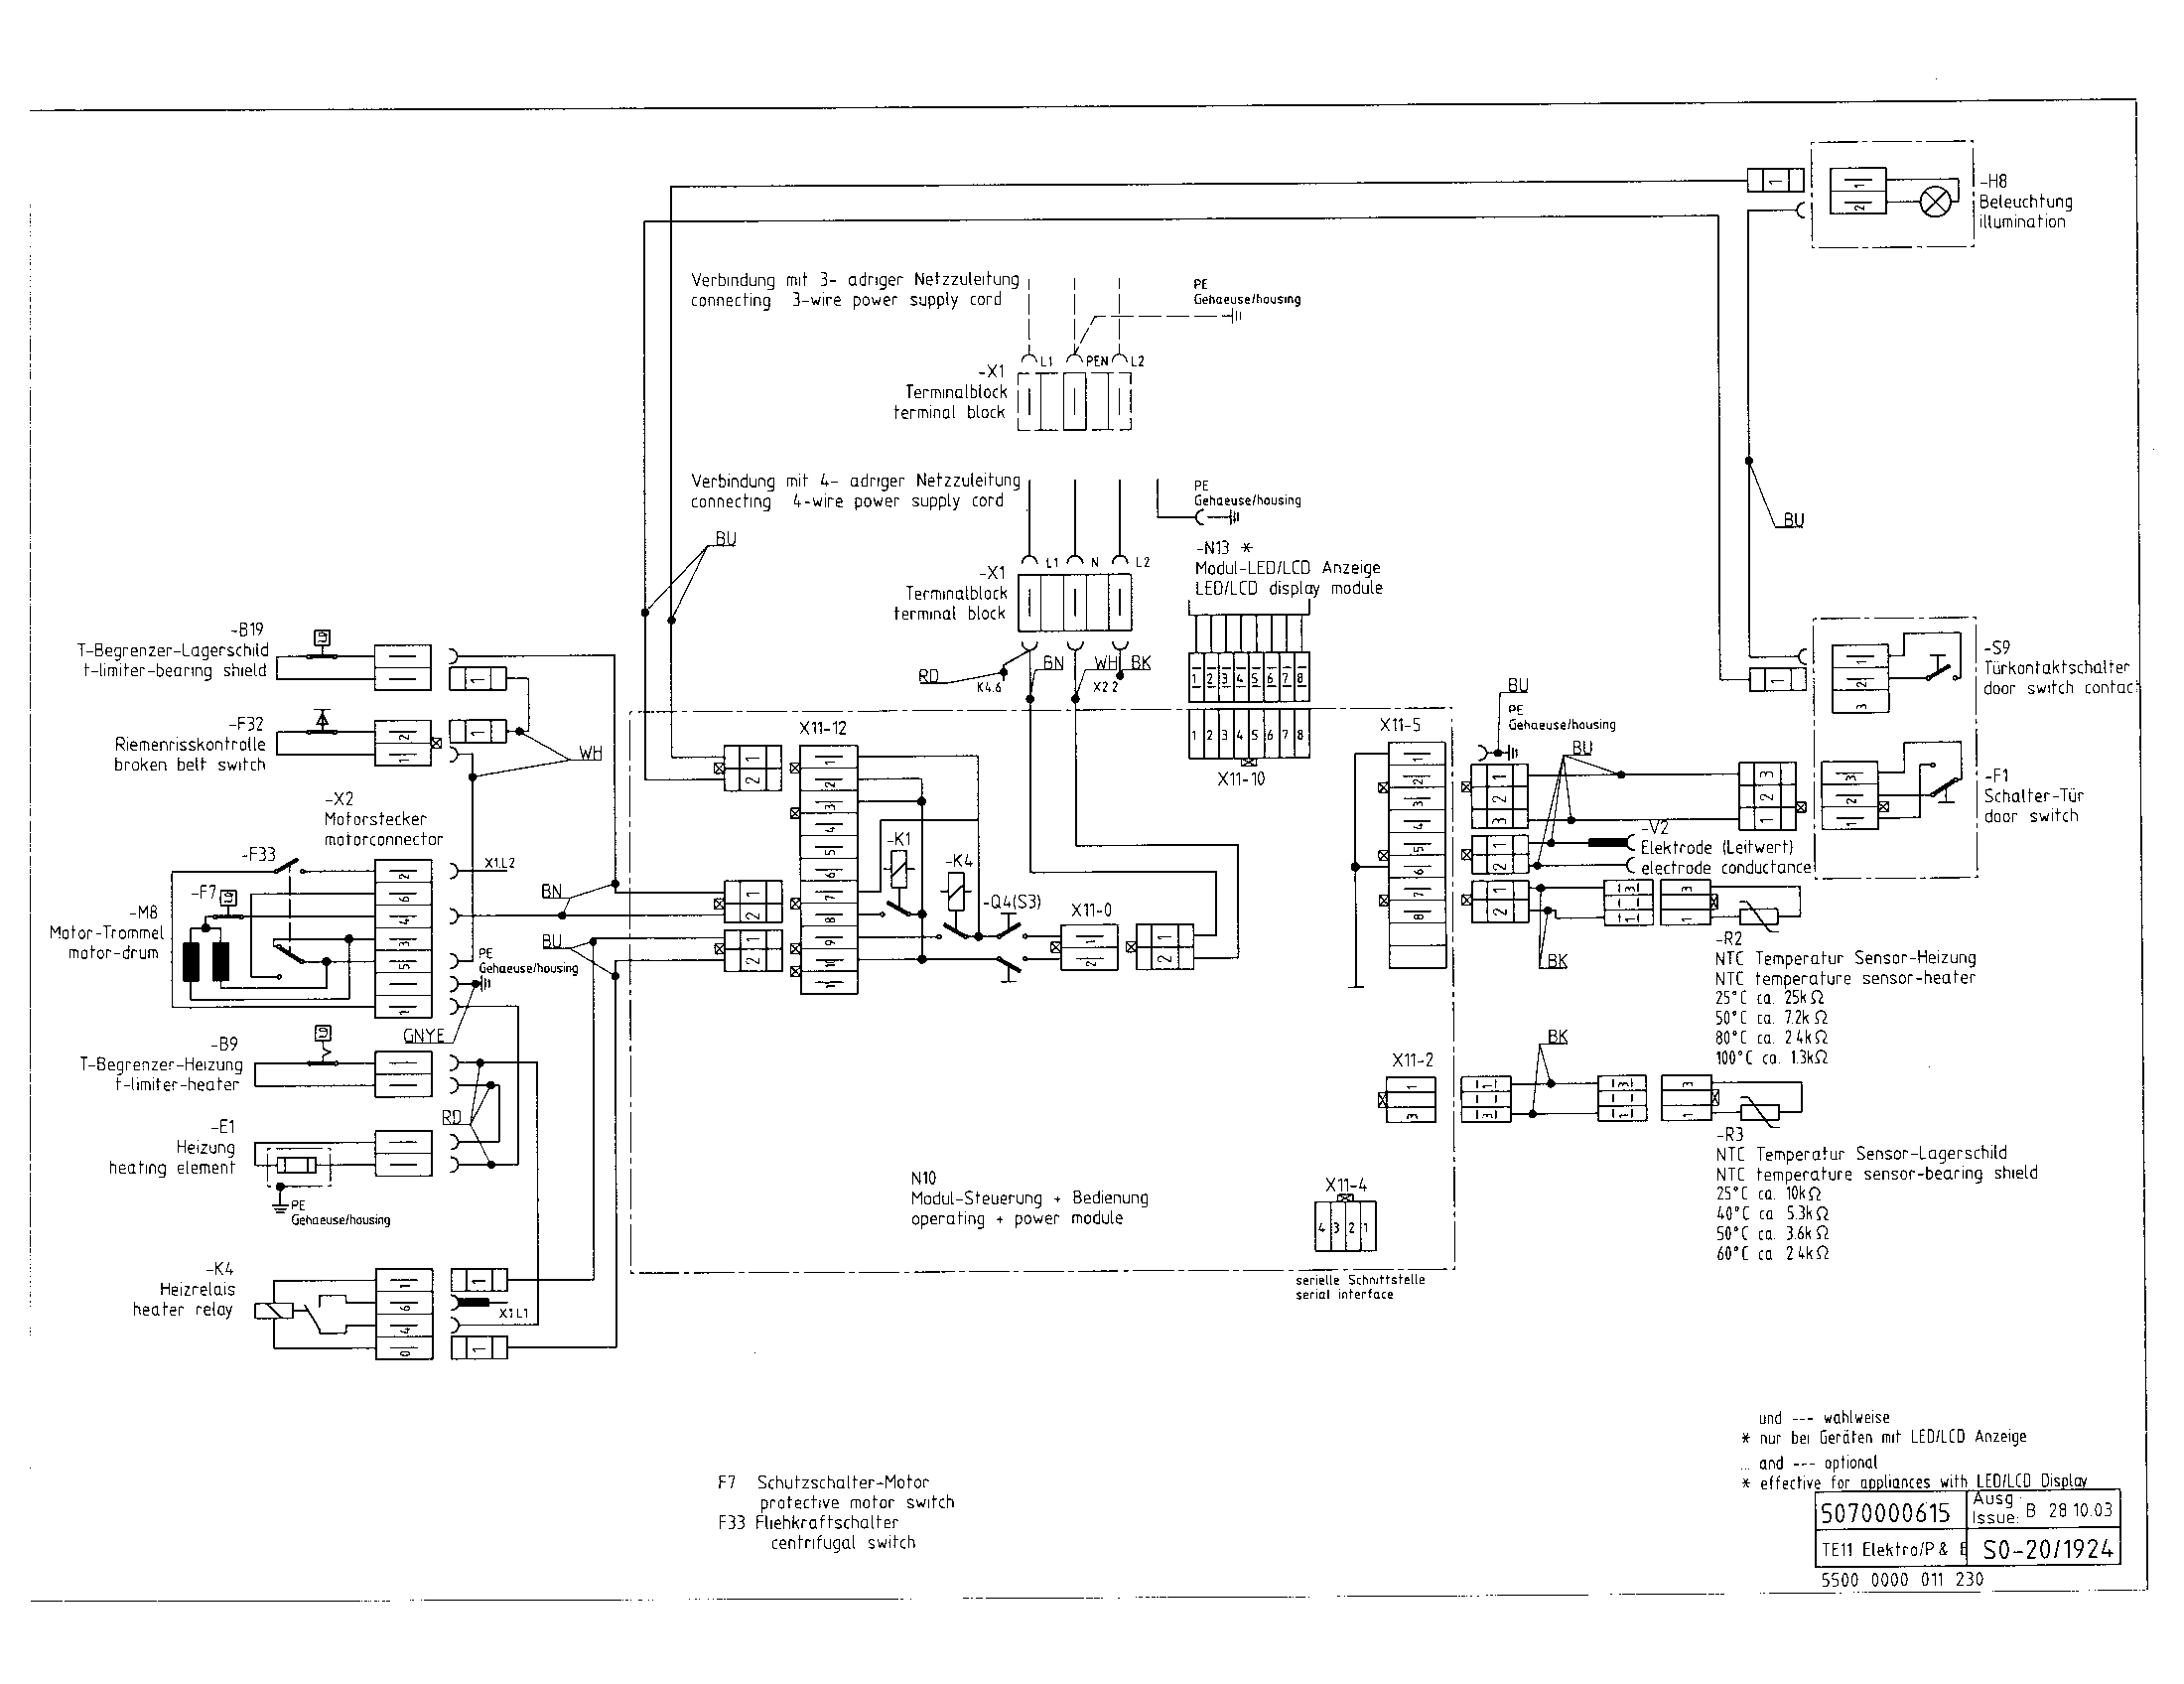 WIRING DIAGRAM Diagram & Parts List for Model wtmc6321us03